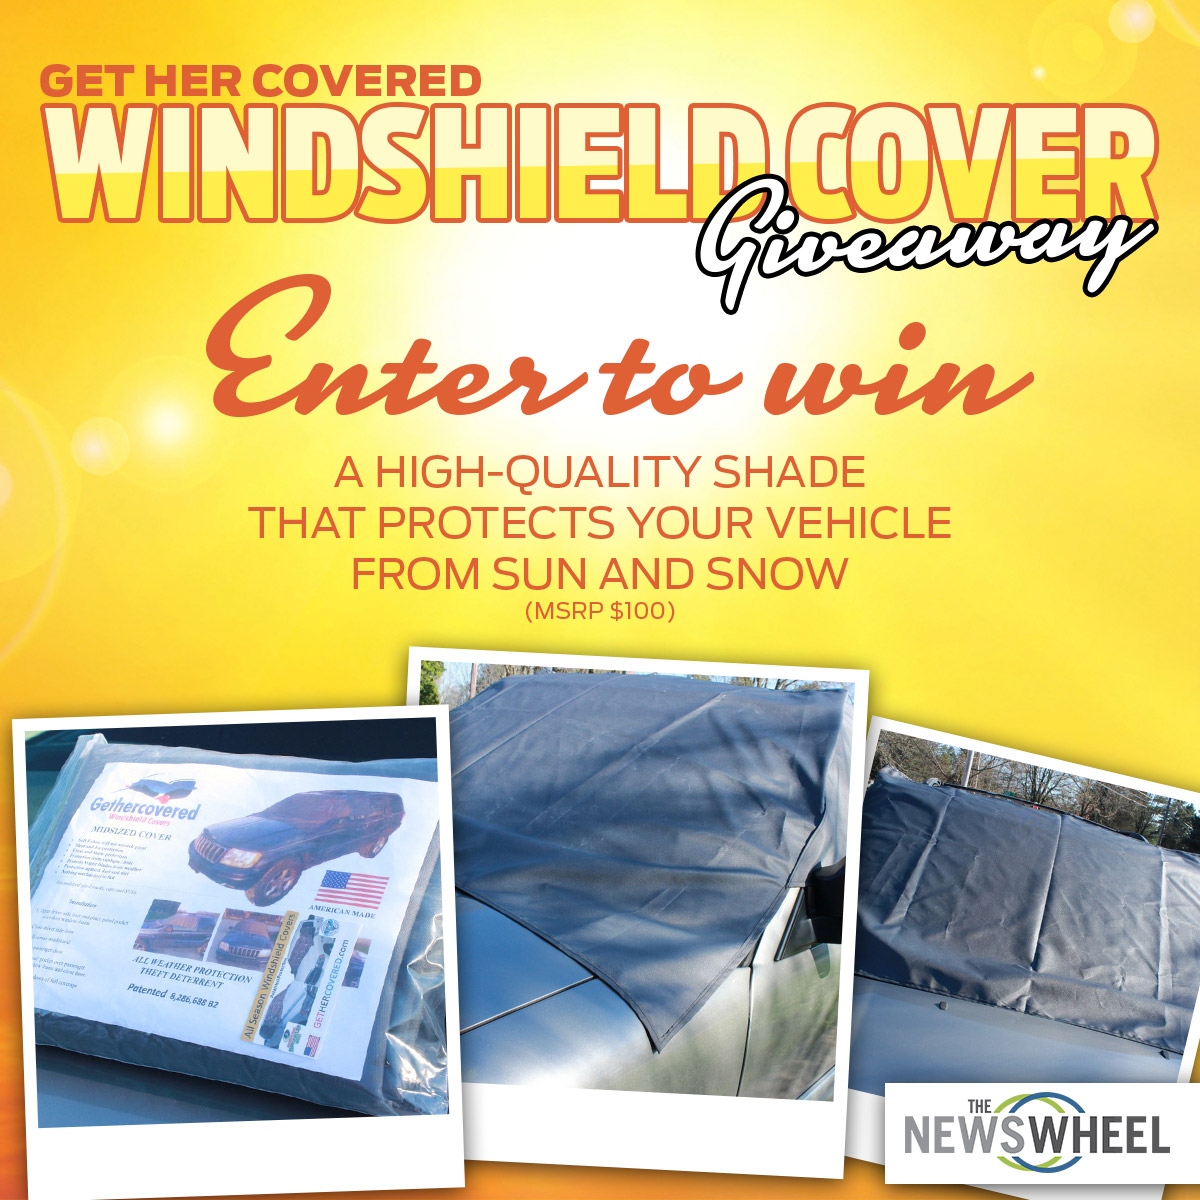 The News Wheel Windshield Cover Giveaway post